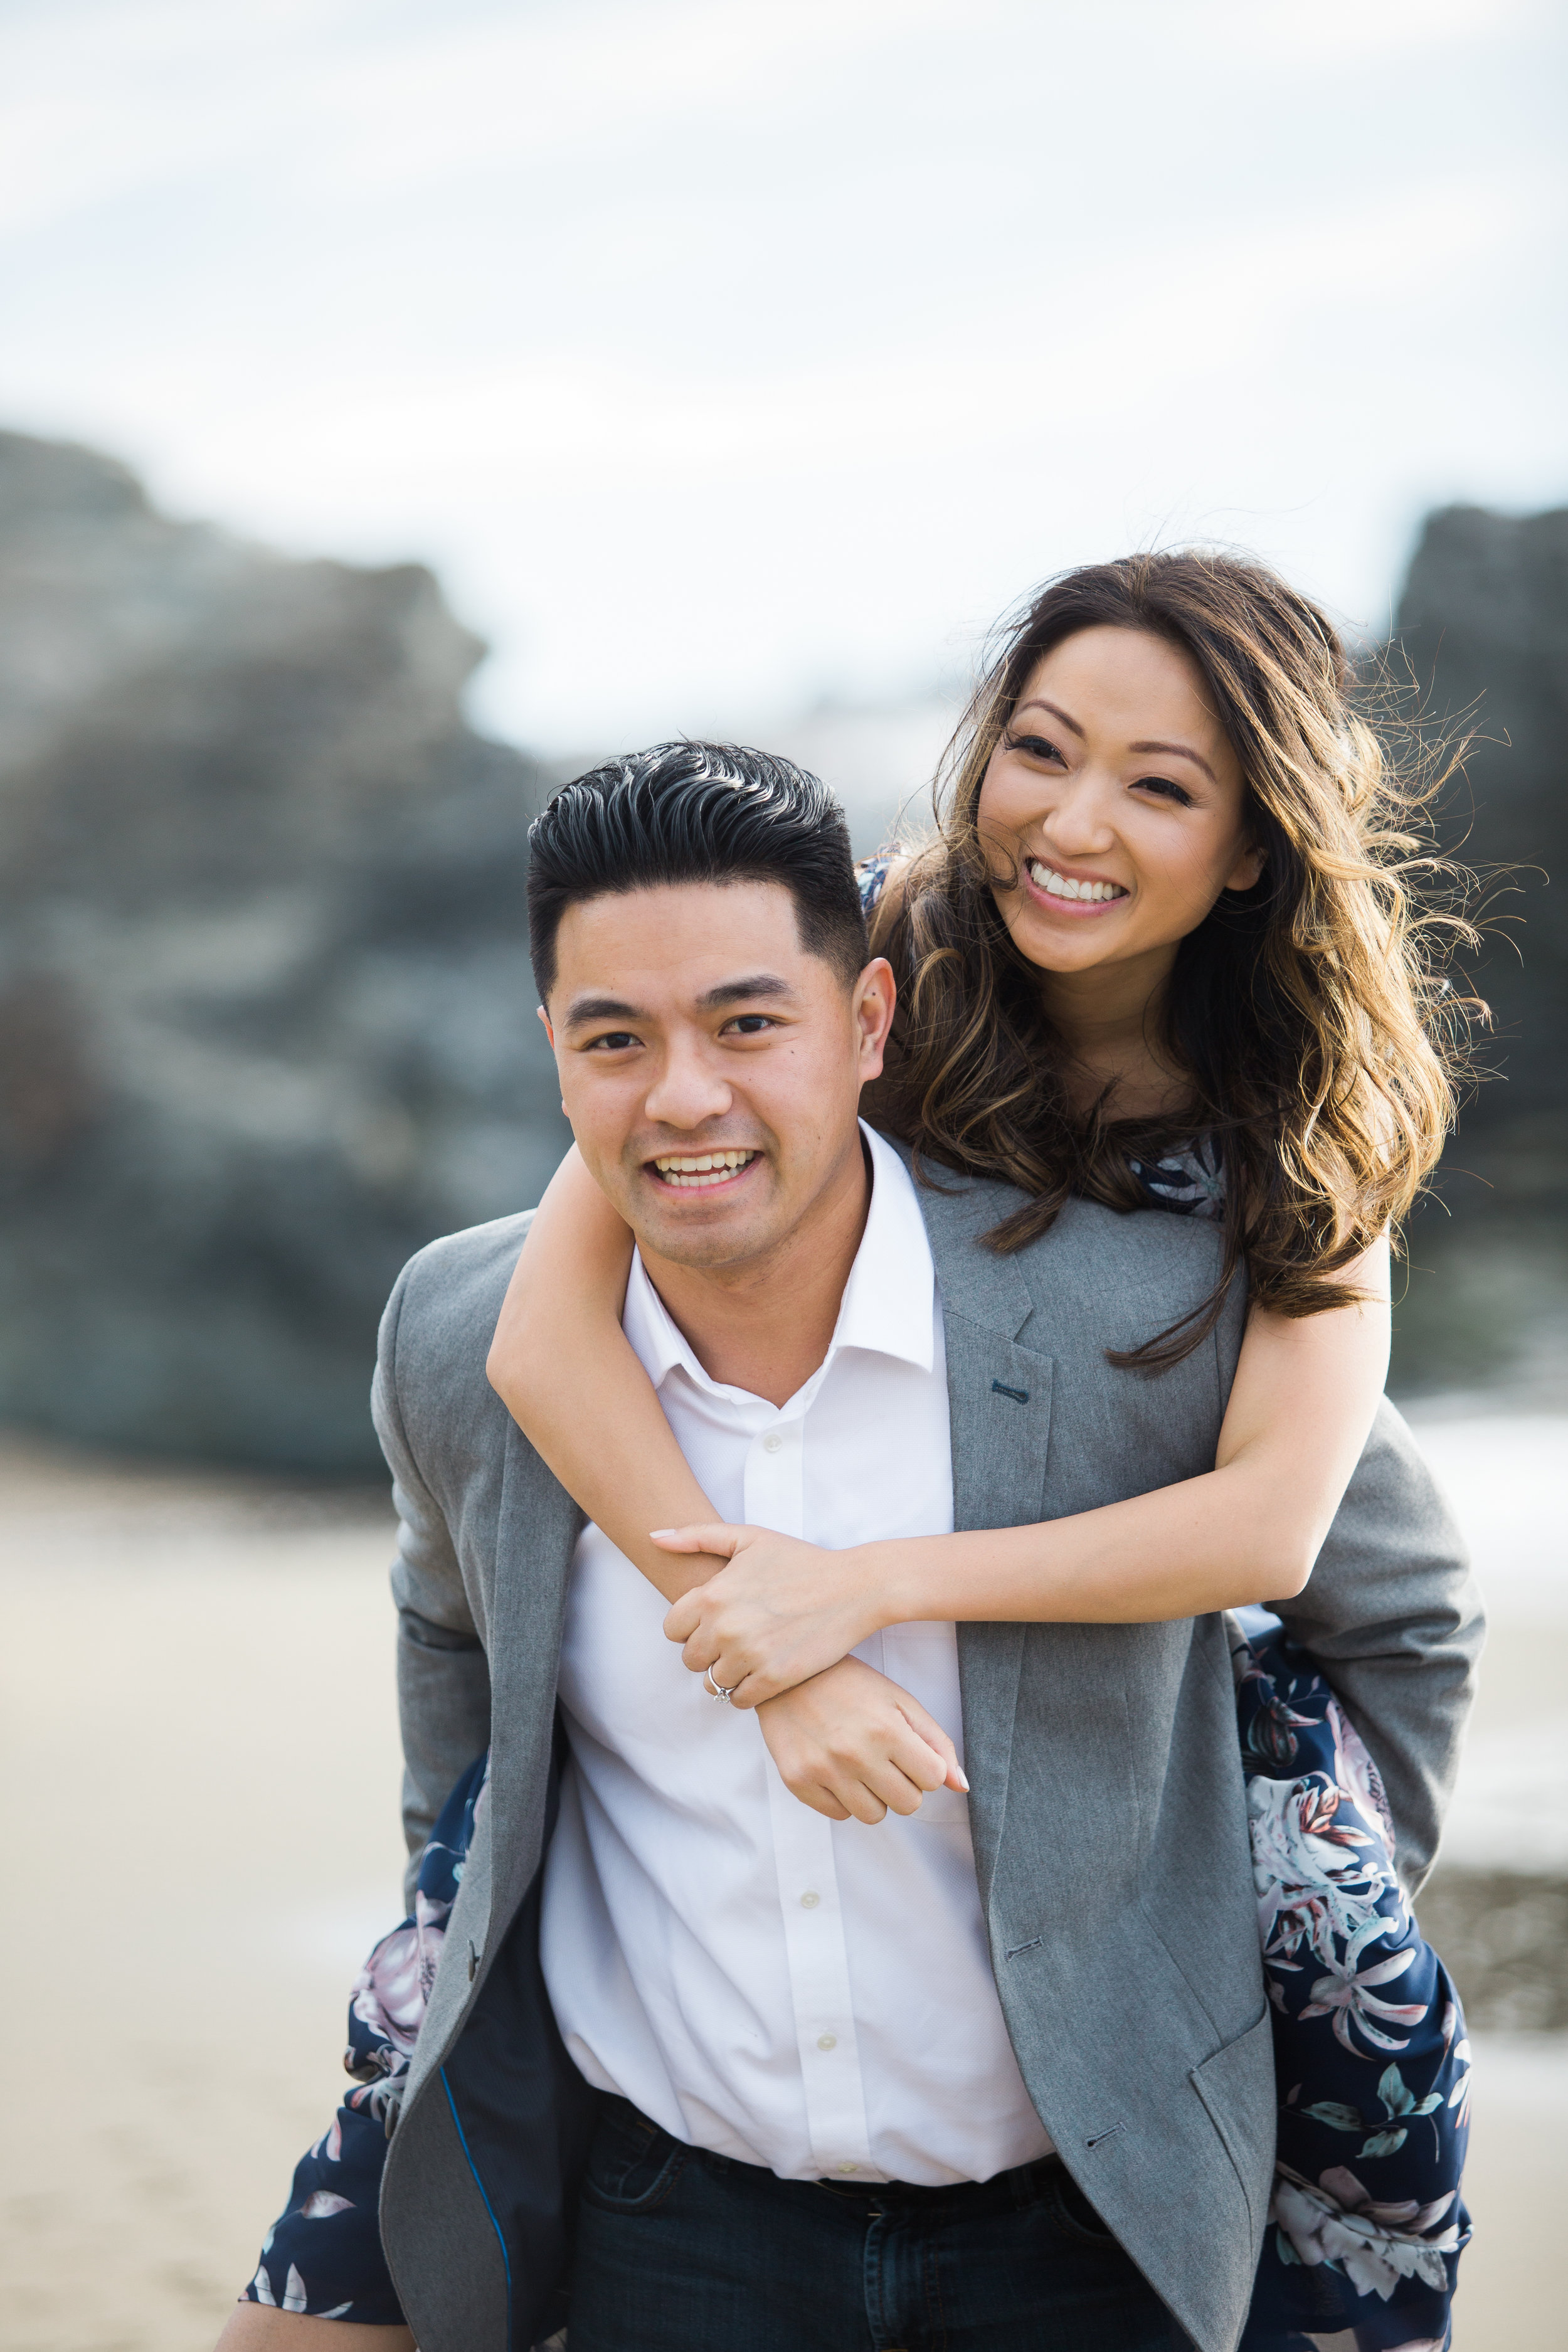 San-Francisco-Engagement-Session-Tara-Nichole-Photo-33.jpg